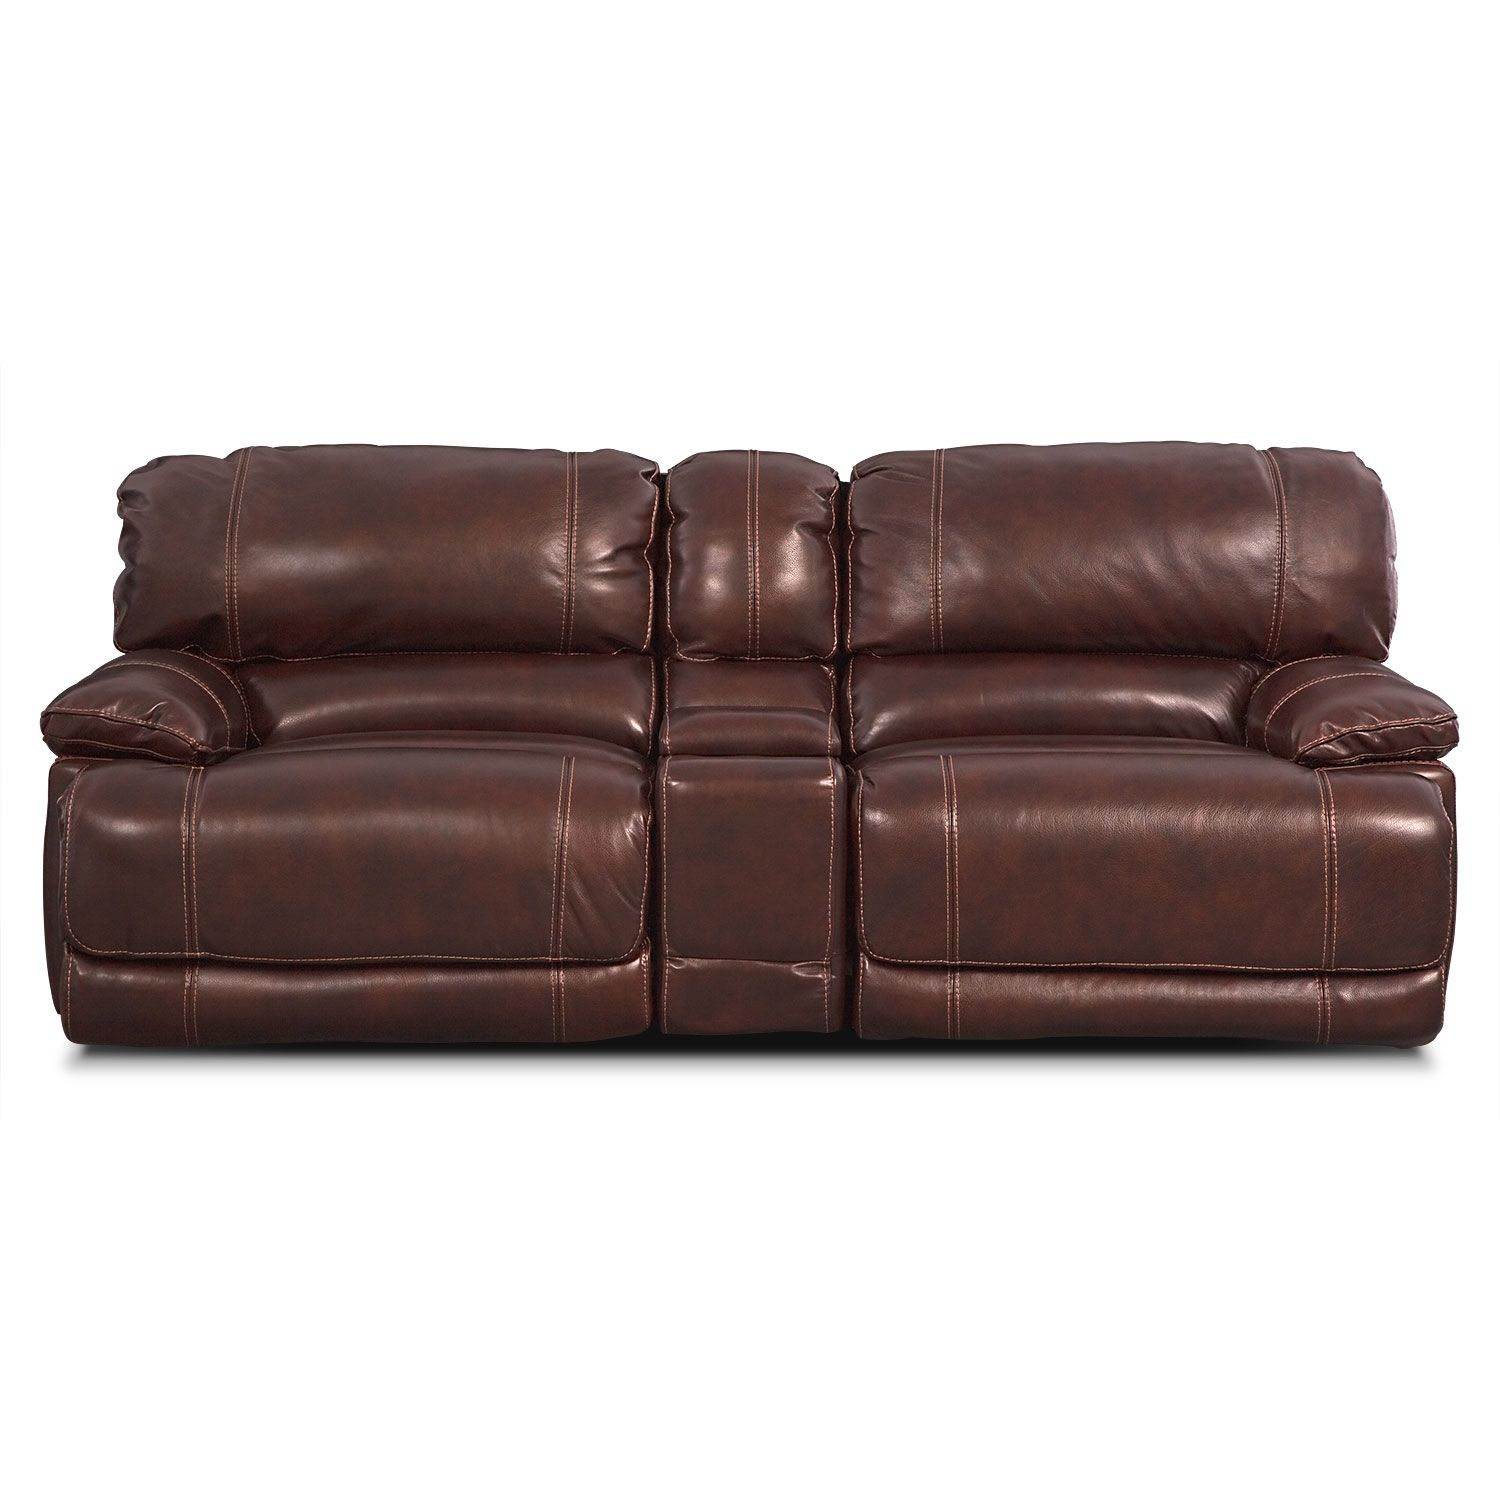 St Malo Iii 3 Pc Power Reclining Sofa With Console Value City